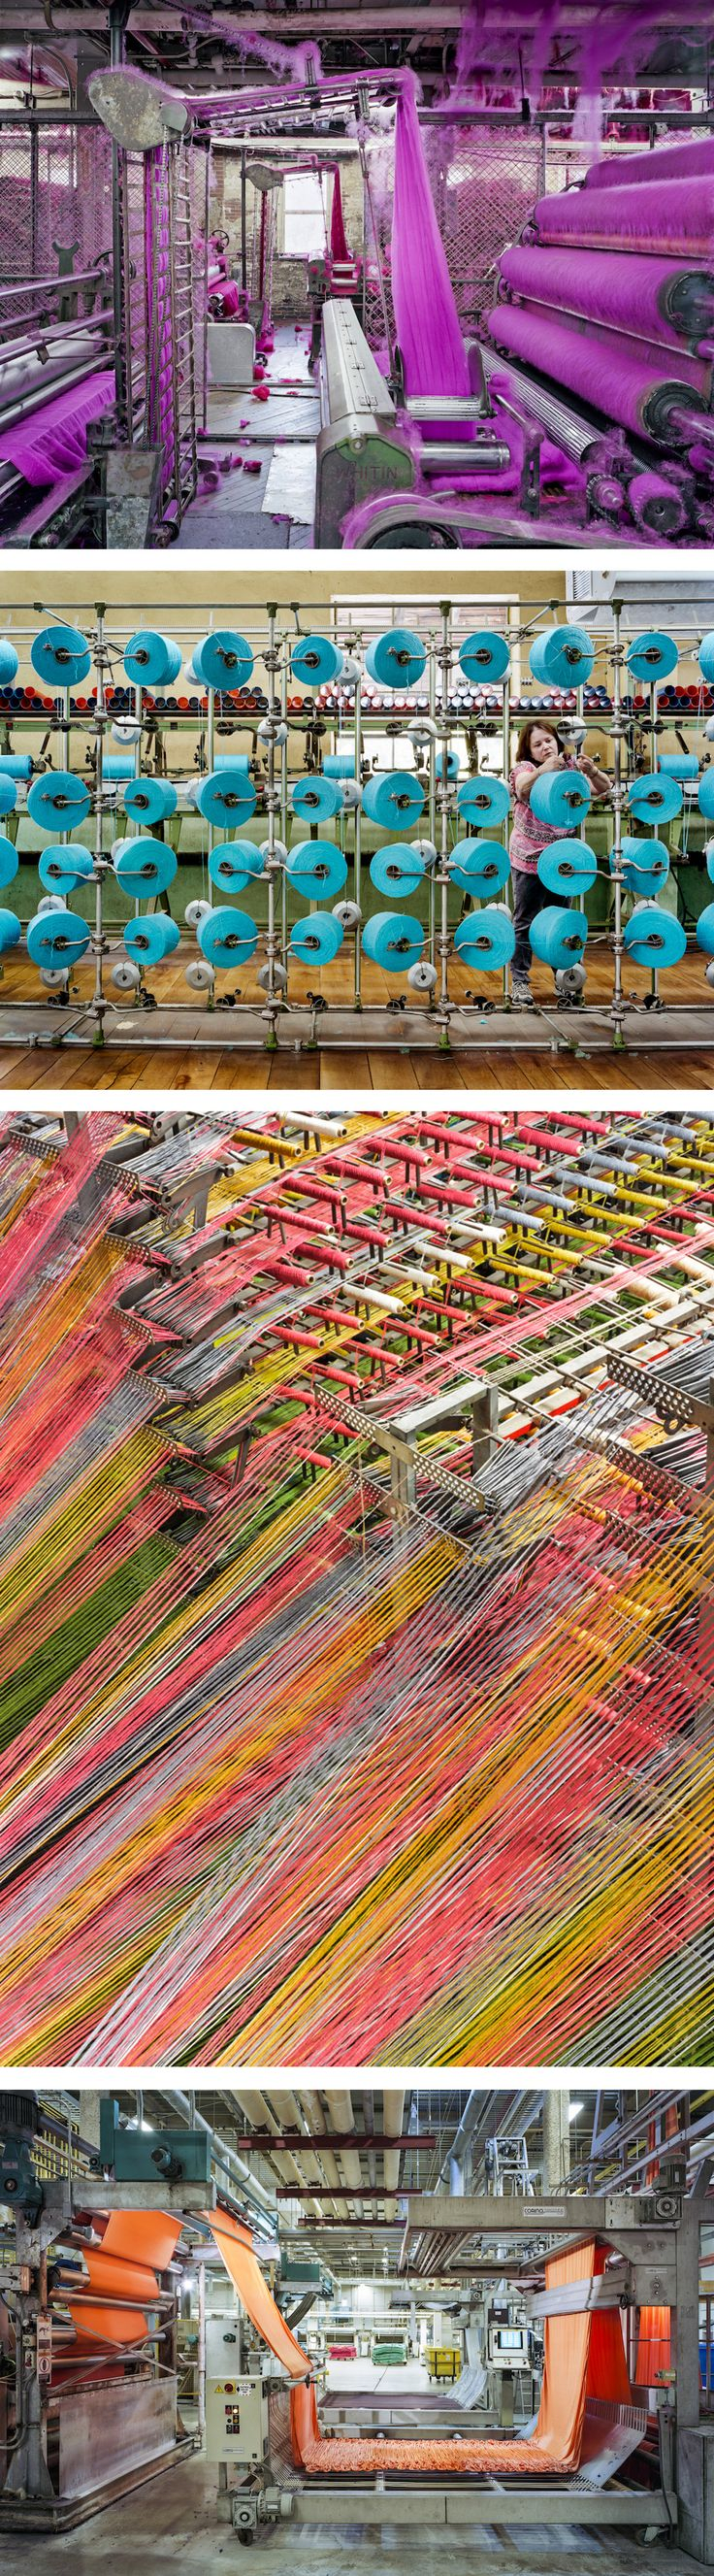 A Photographic Celebration of America's Vibrant Textile Industry by Christopher Payne